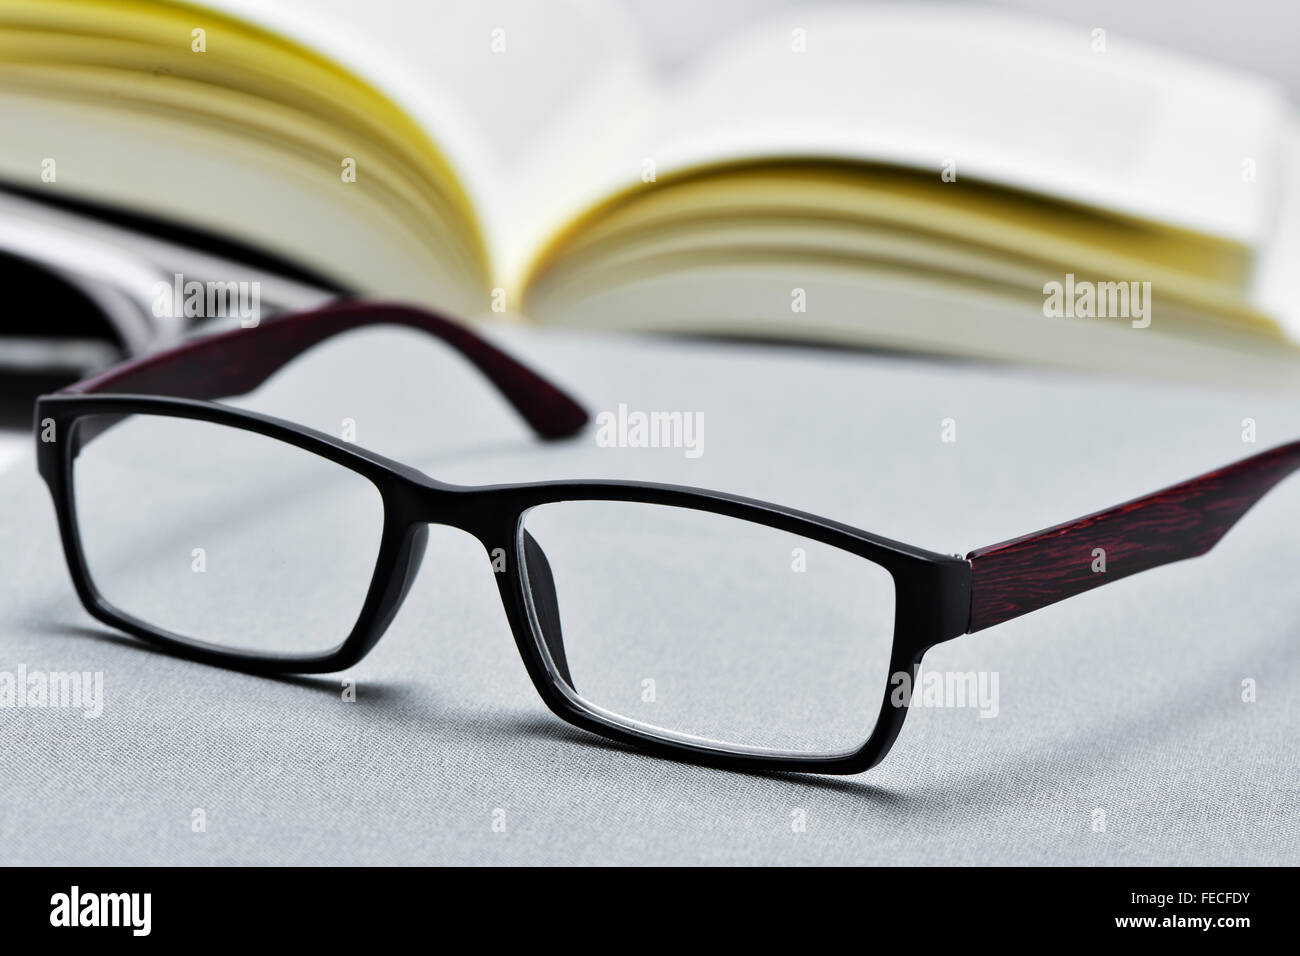 closeup of a pair of eyeglasses and an open book in the background - Stock Image